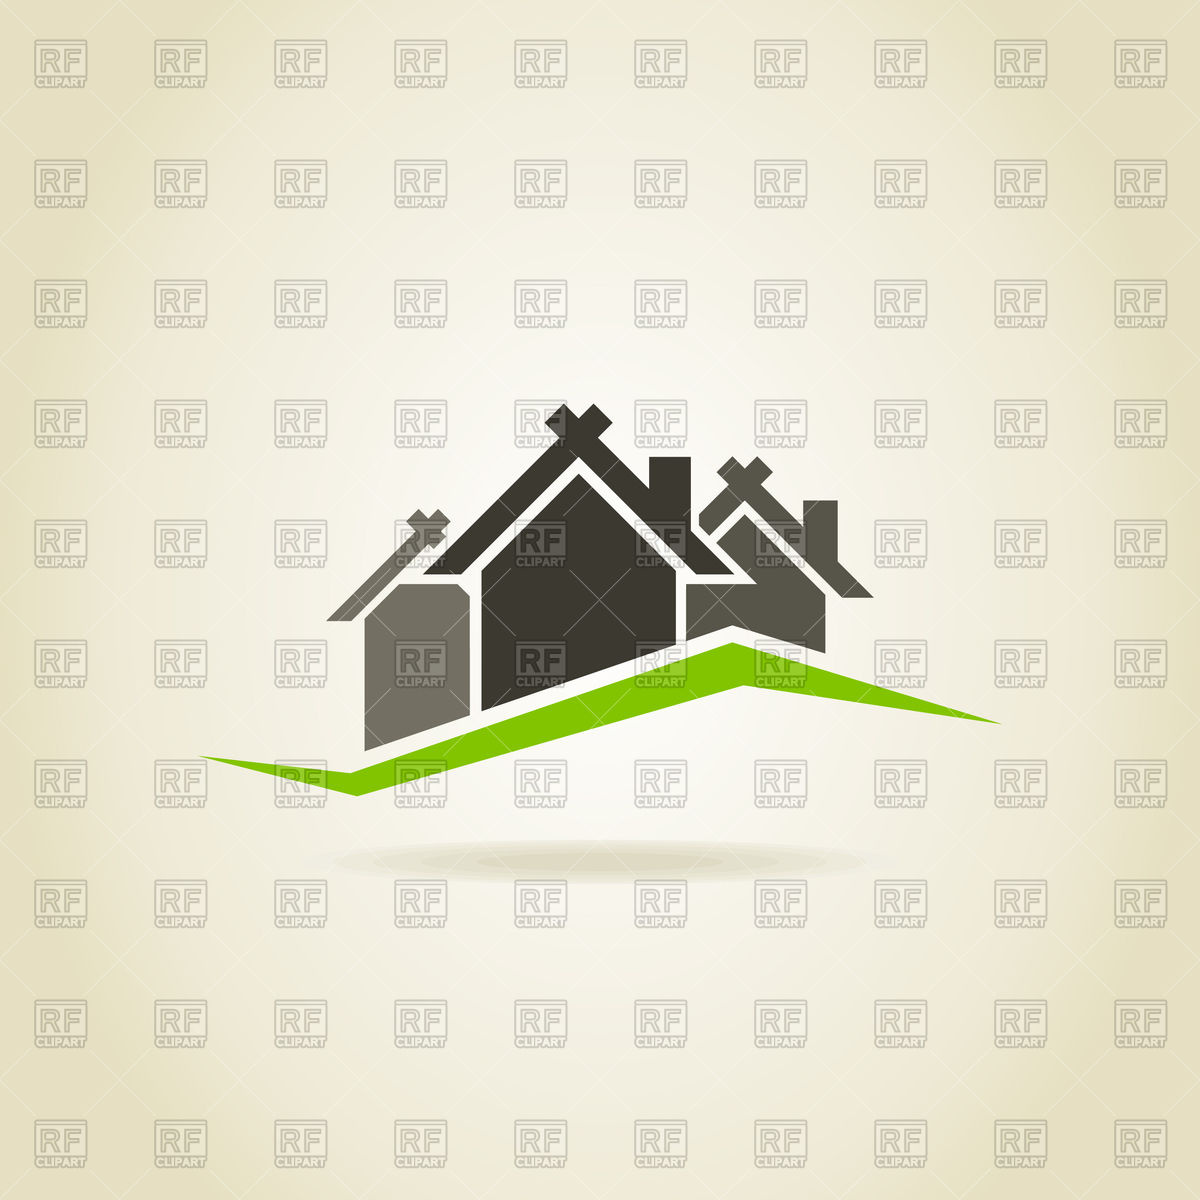 Three houses on green hill icon Vector Image #82875.